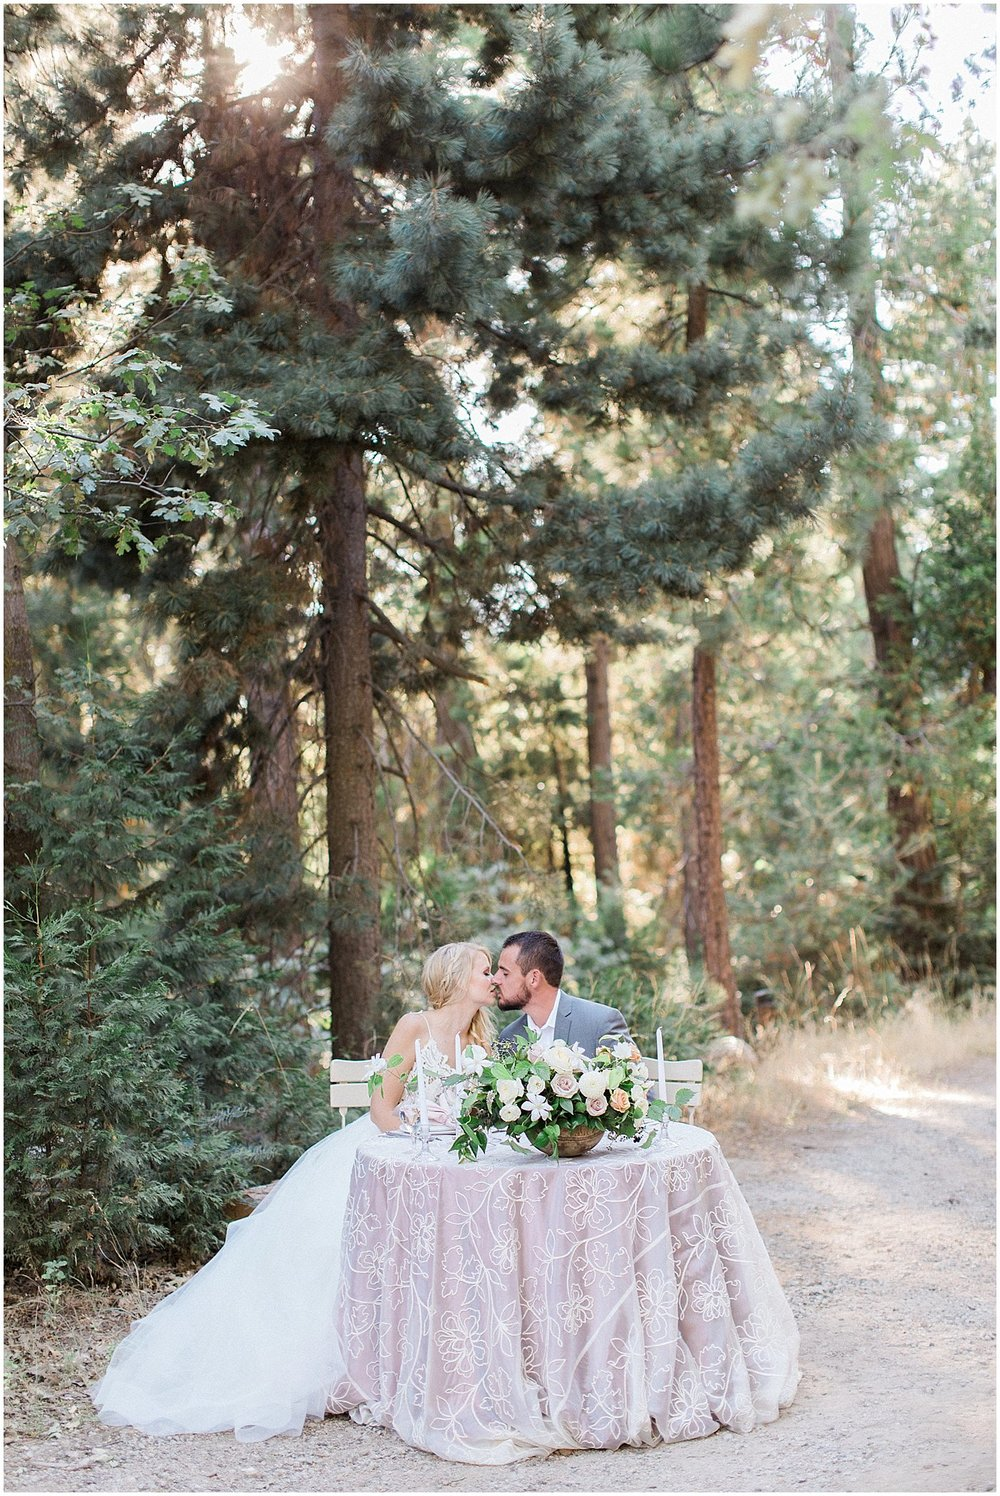 Whimsical Bride & Groom Sweetheart Table featured on Style Me Pretty | Phoenix Wedding Planner | Megan Dileen Events